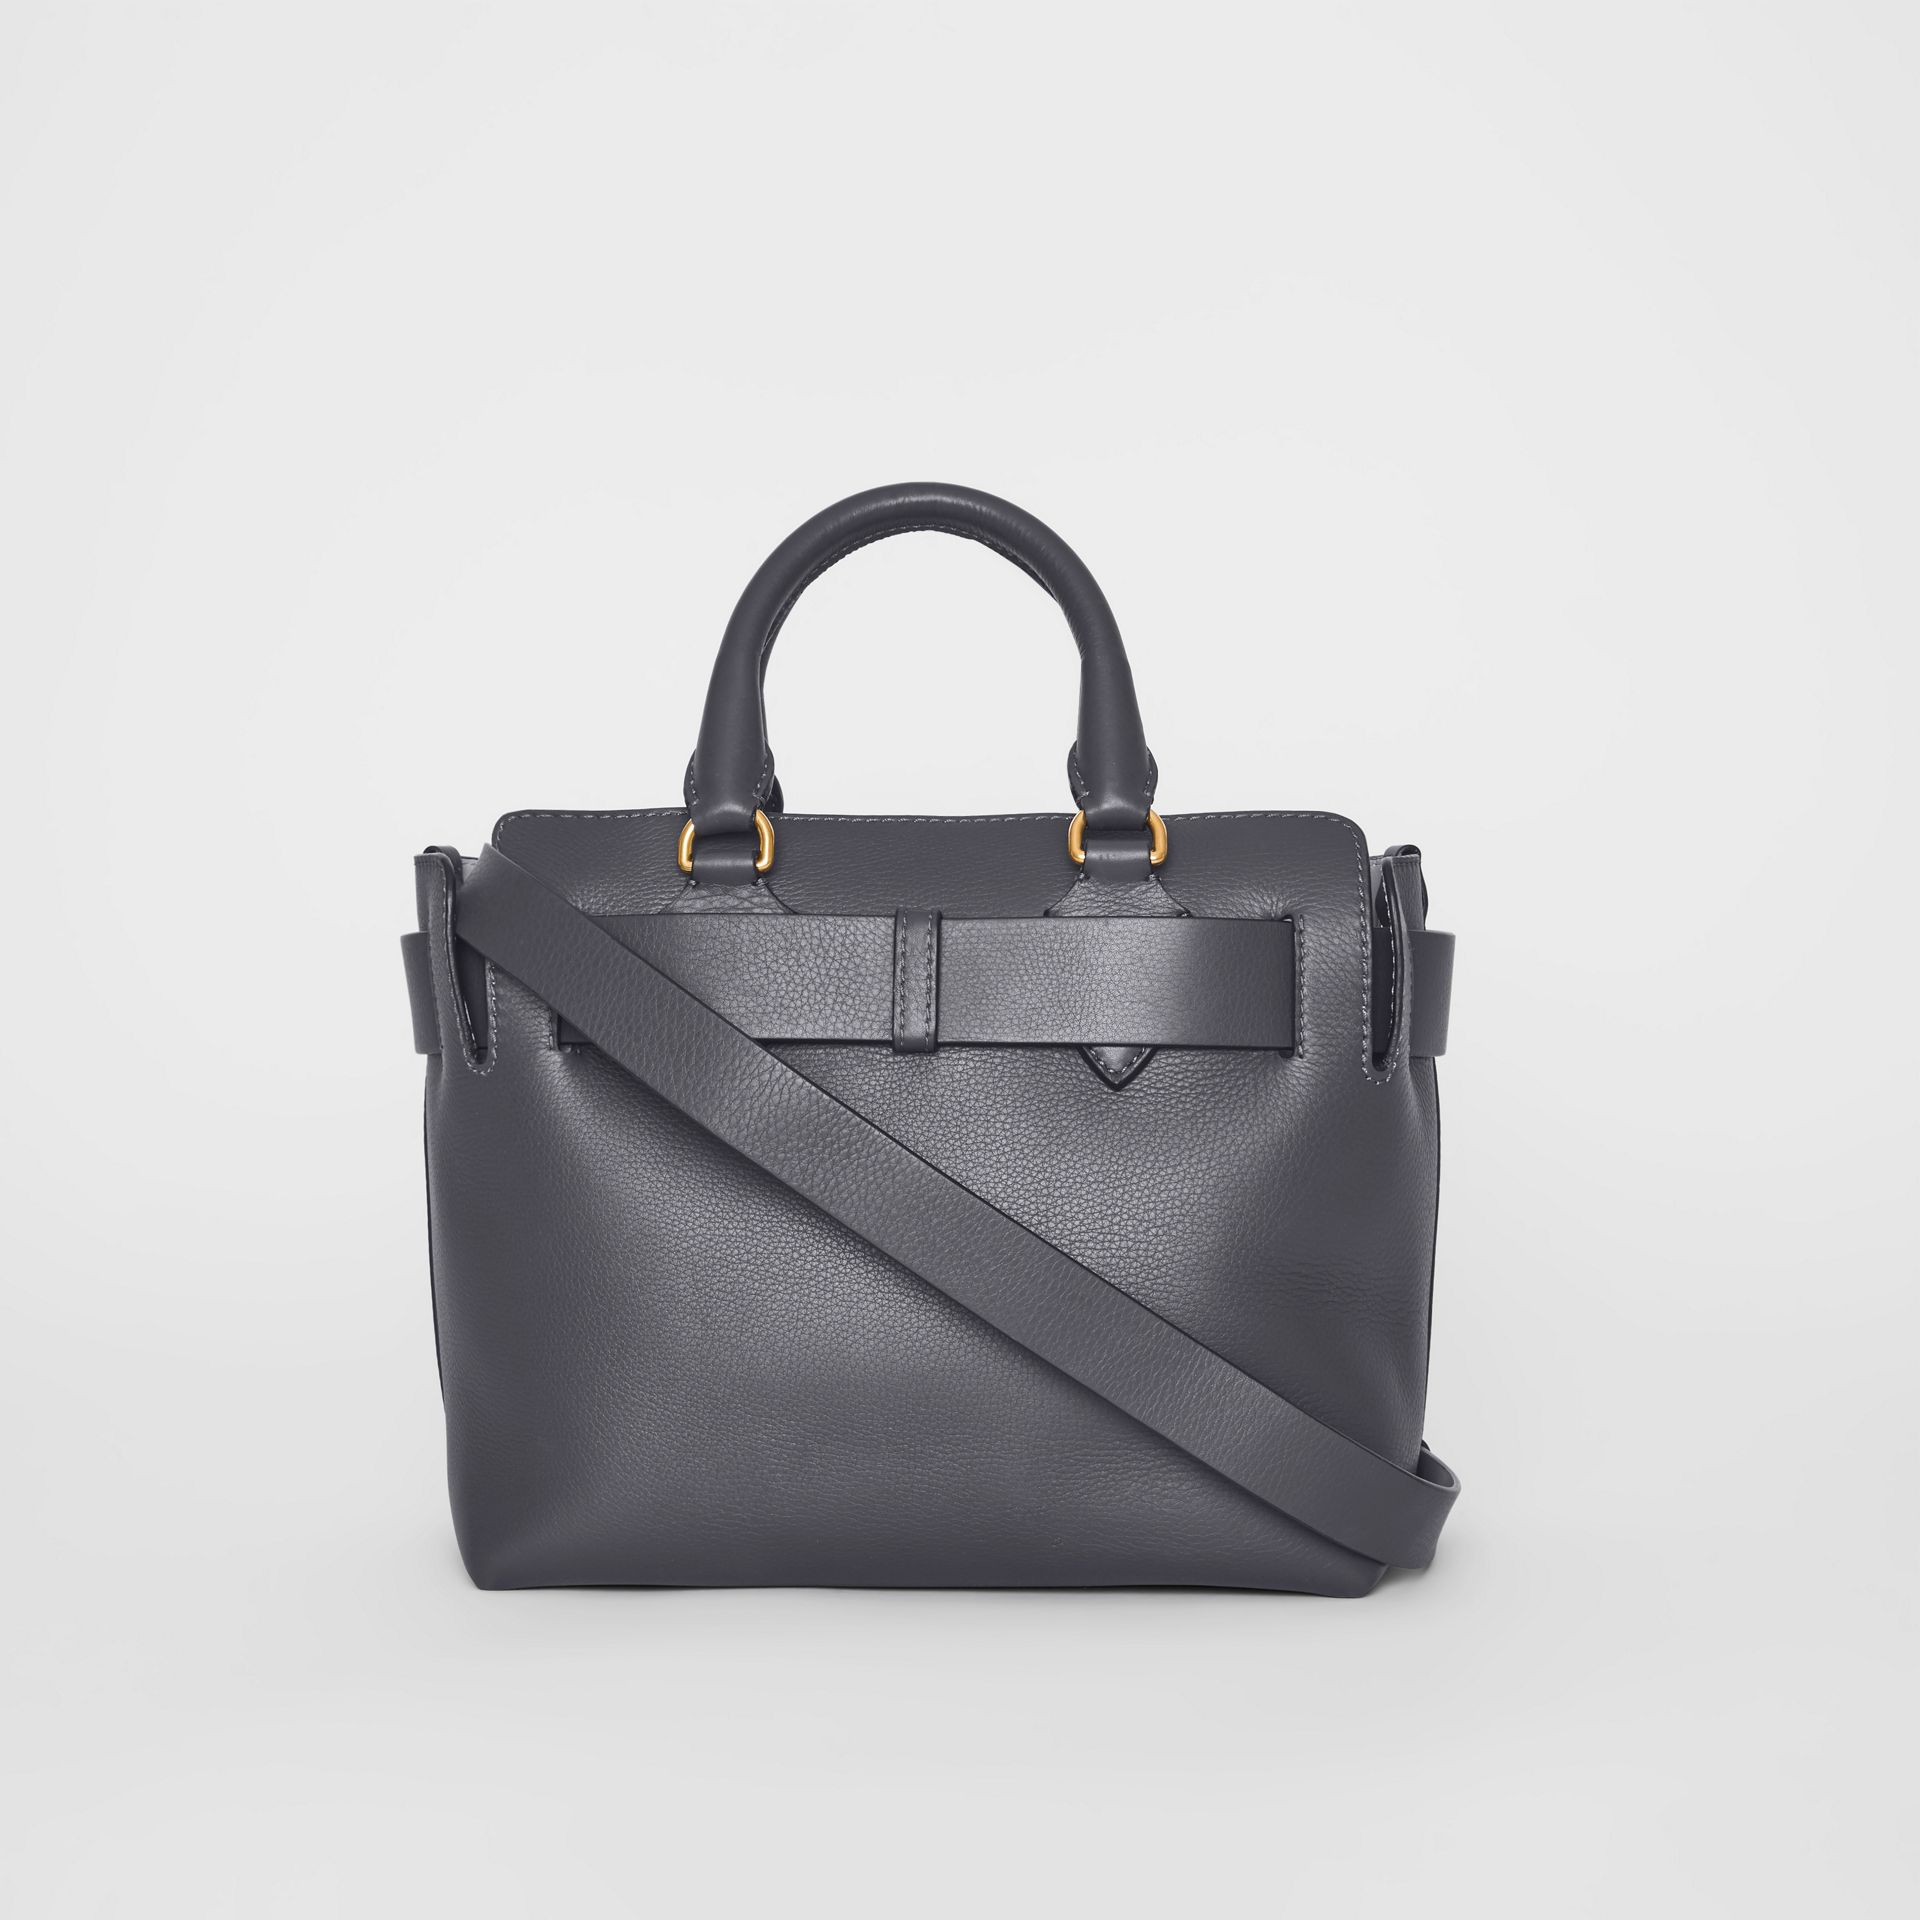 Petit sac The Belt en cuir (Gris Anthracite) - Femme | Burberry Canada - photo de la galerie 6